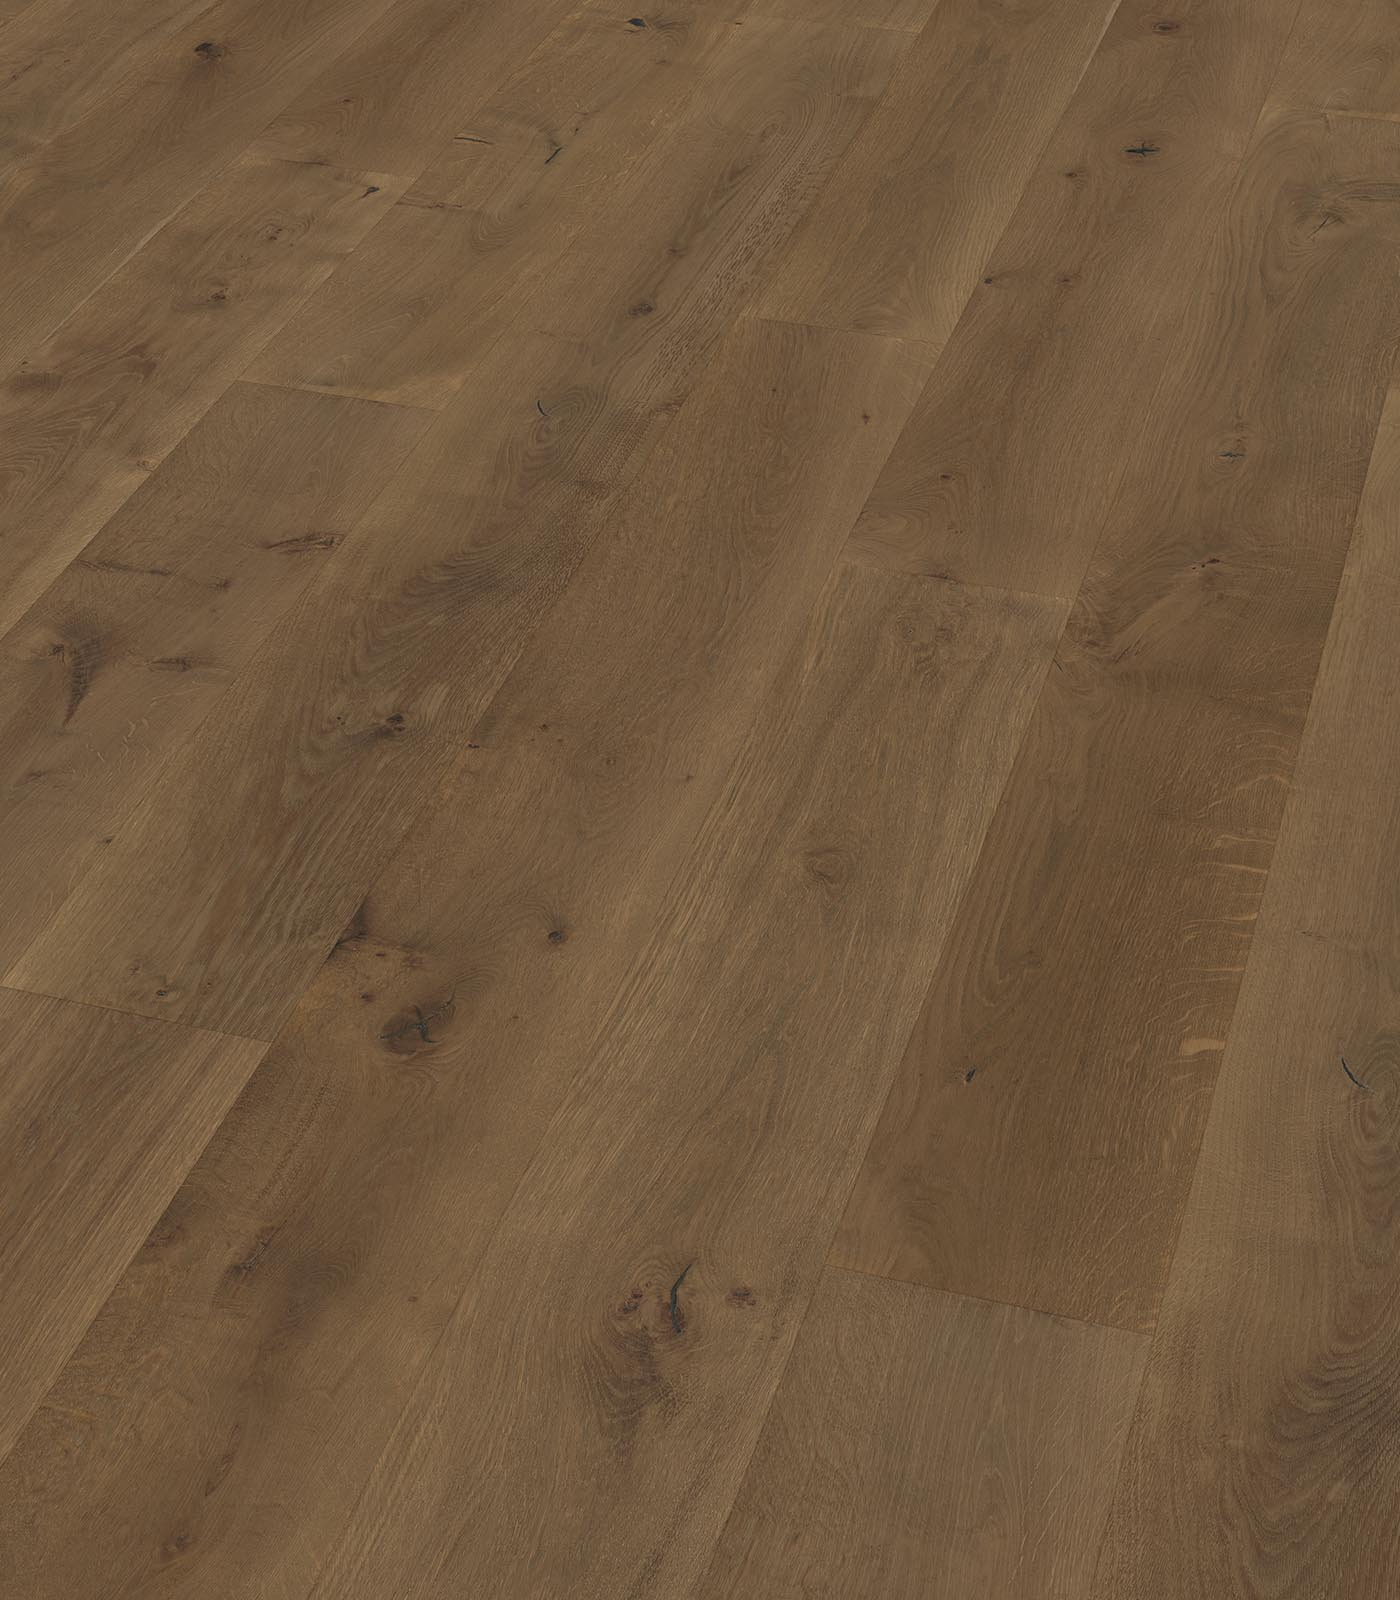 Bahamas-Island collection-European Oak Floors-angle